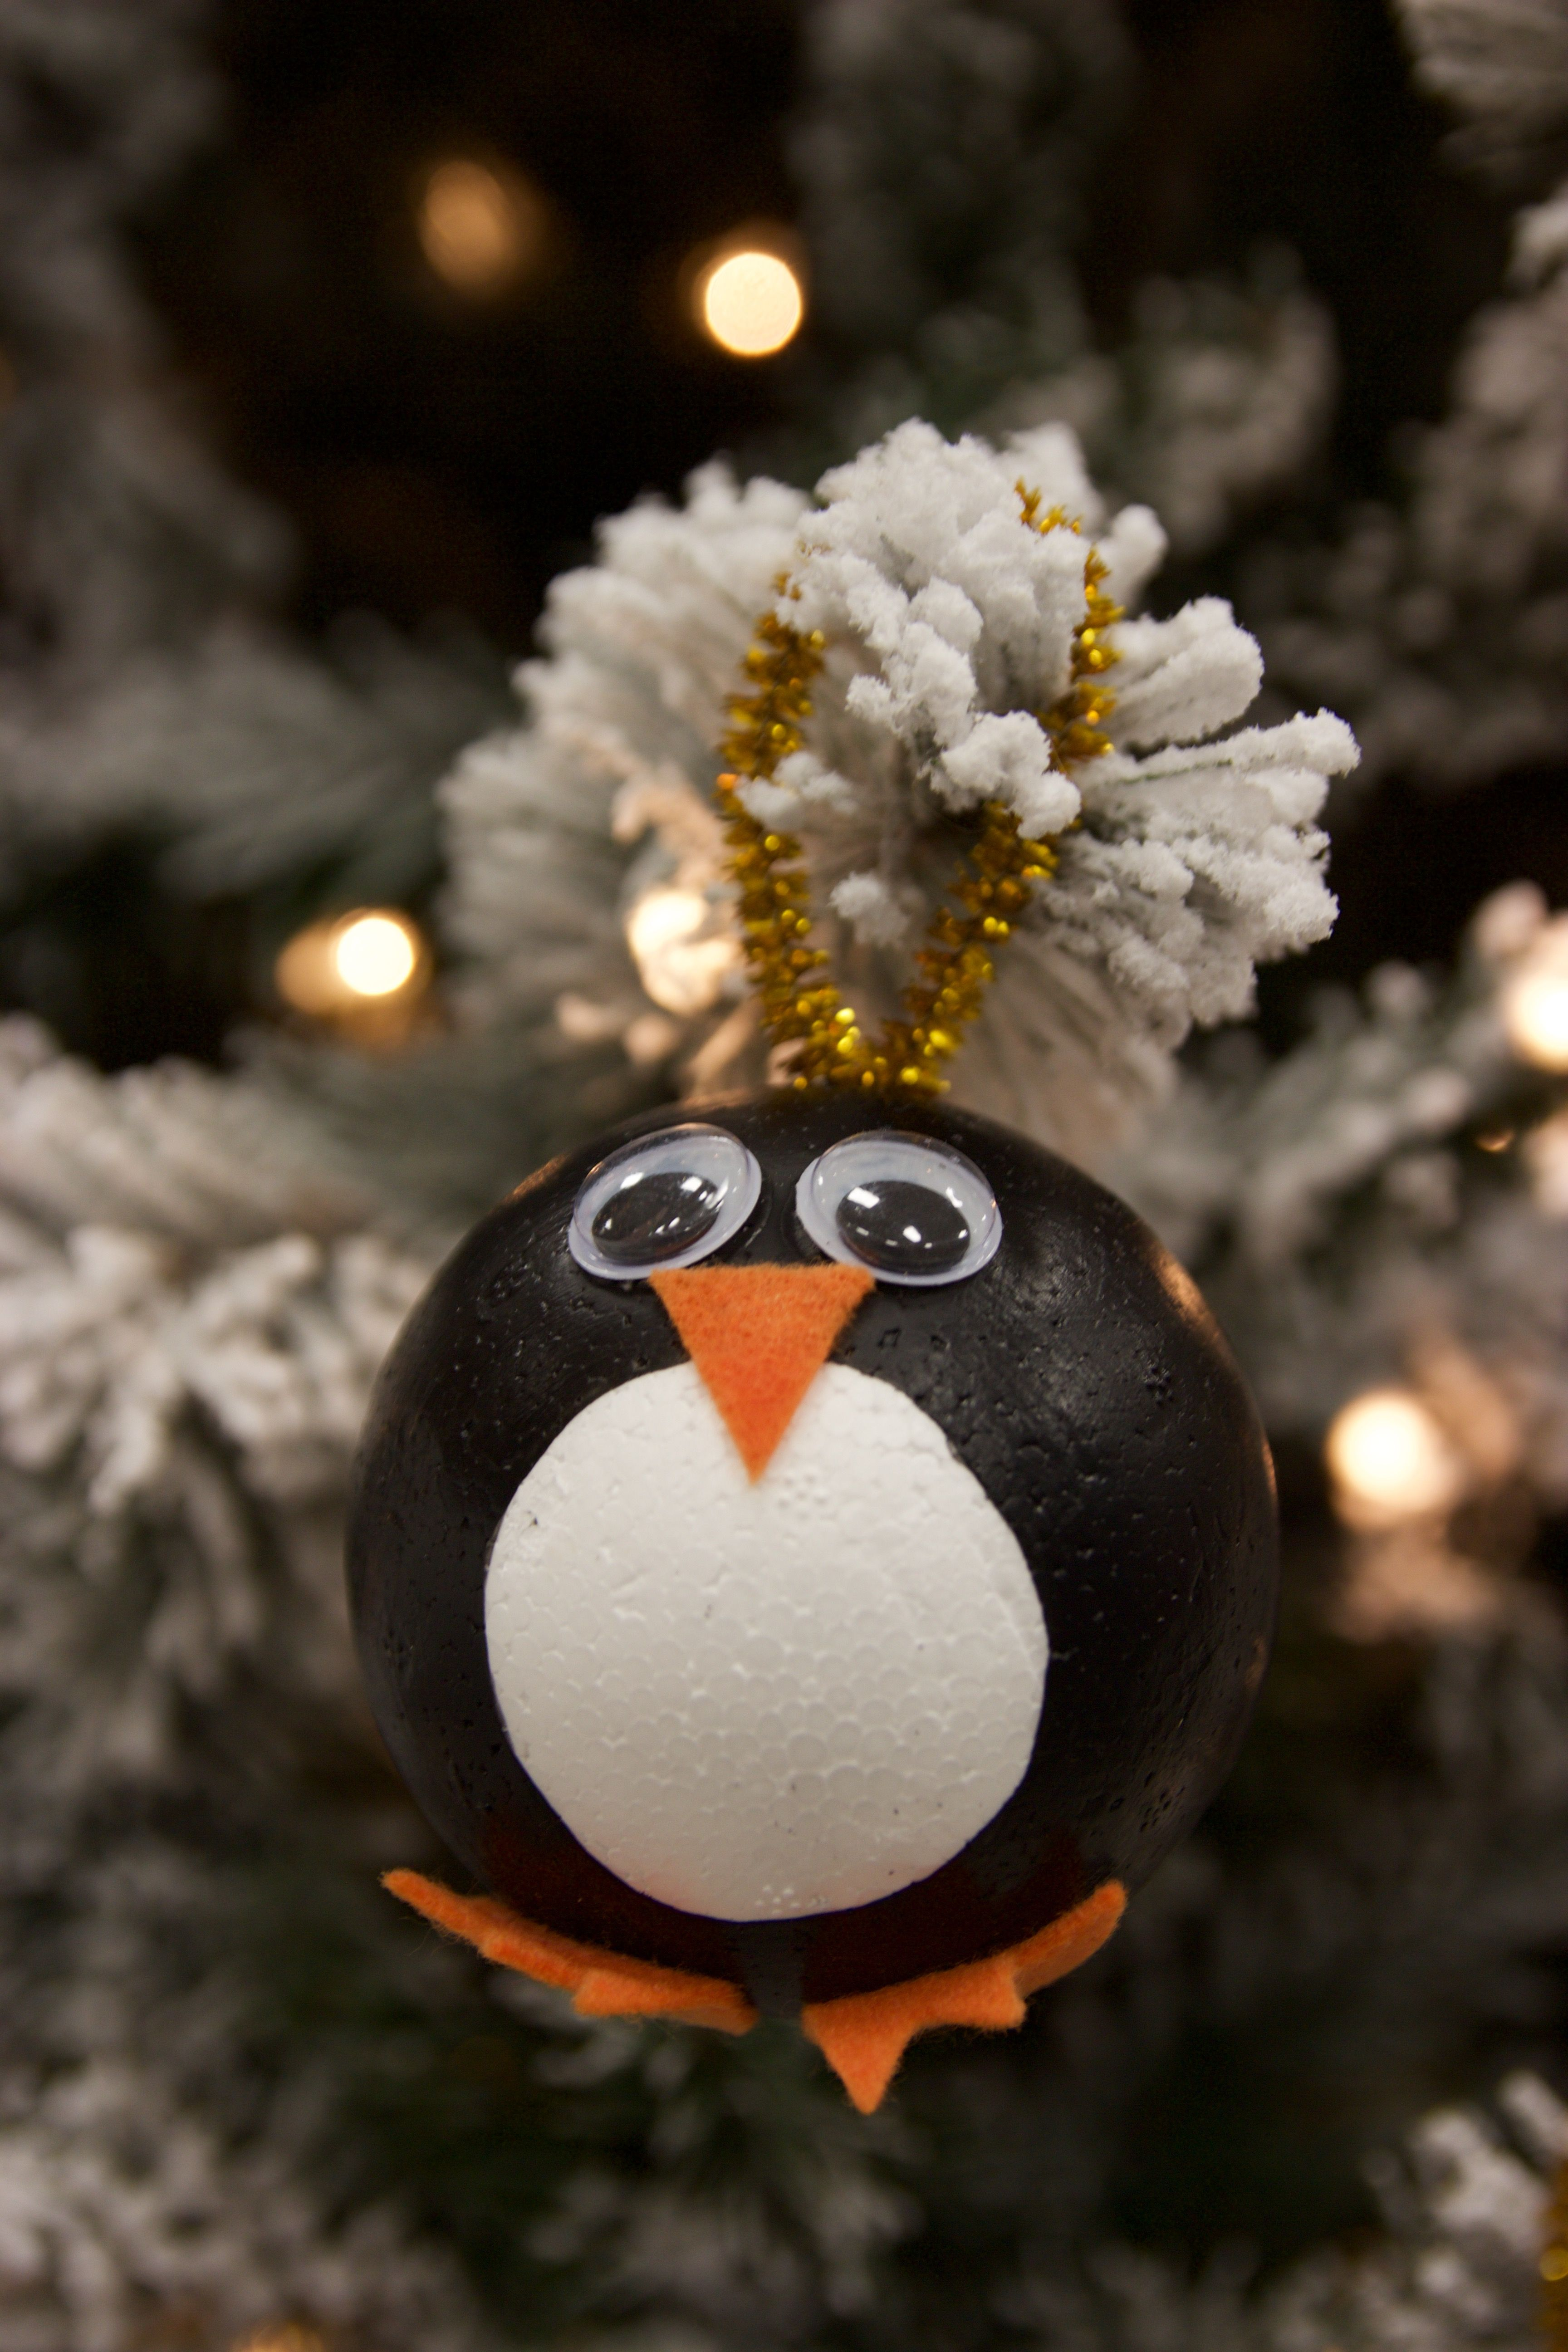 Diy Penguin Ornaments A Little Craft In Your Day Diy Christmas Ornaments Easy Easy Christmas Ornaments Christmas Ornament Crafts